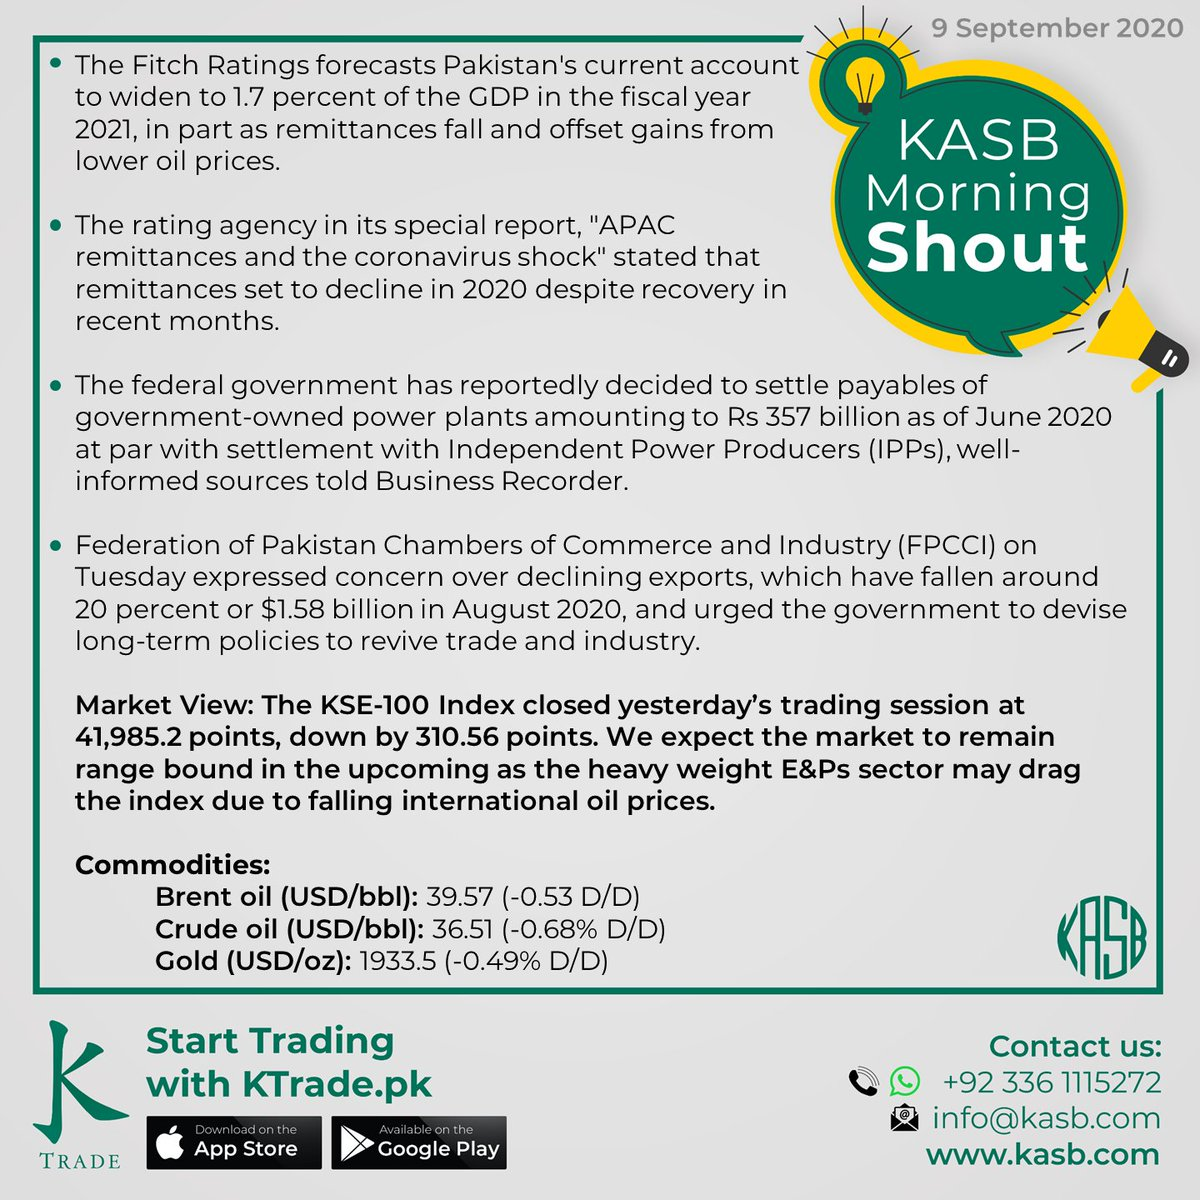 KASB Morning Shout: Our views on today's news #kasb #smartinvesting #psx #stockmarket #KTrade #onlinetrading #pakistaneconomy #imrankhan #sbp #inflation #kse100 #brokeragehouse #psxstocks #marketupdate #emergingmarkets #frontiermarkets #news #morning #today #views https://t.co/Qzm133pCq1